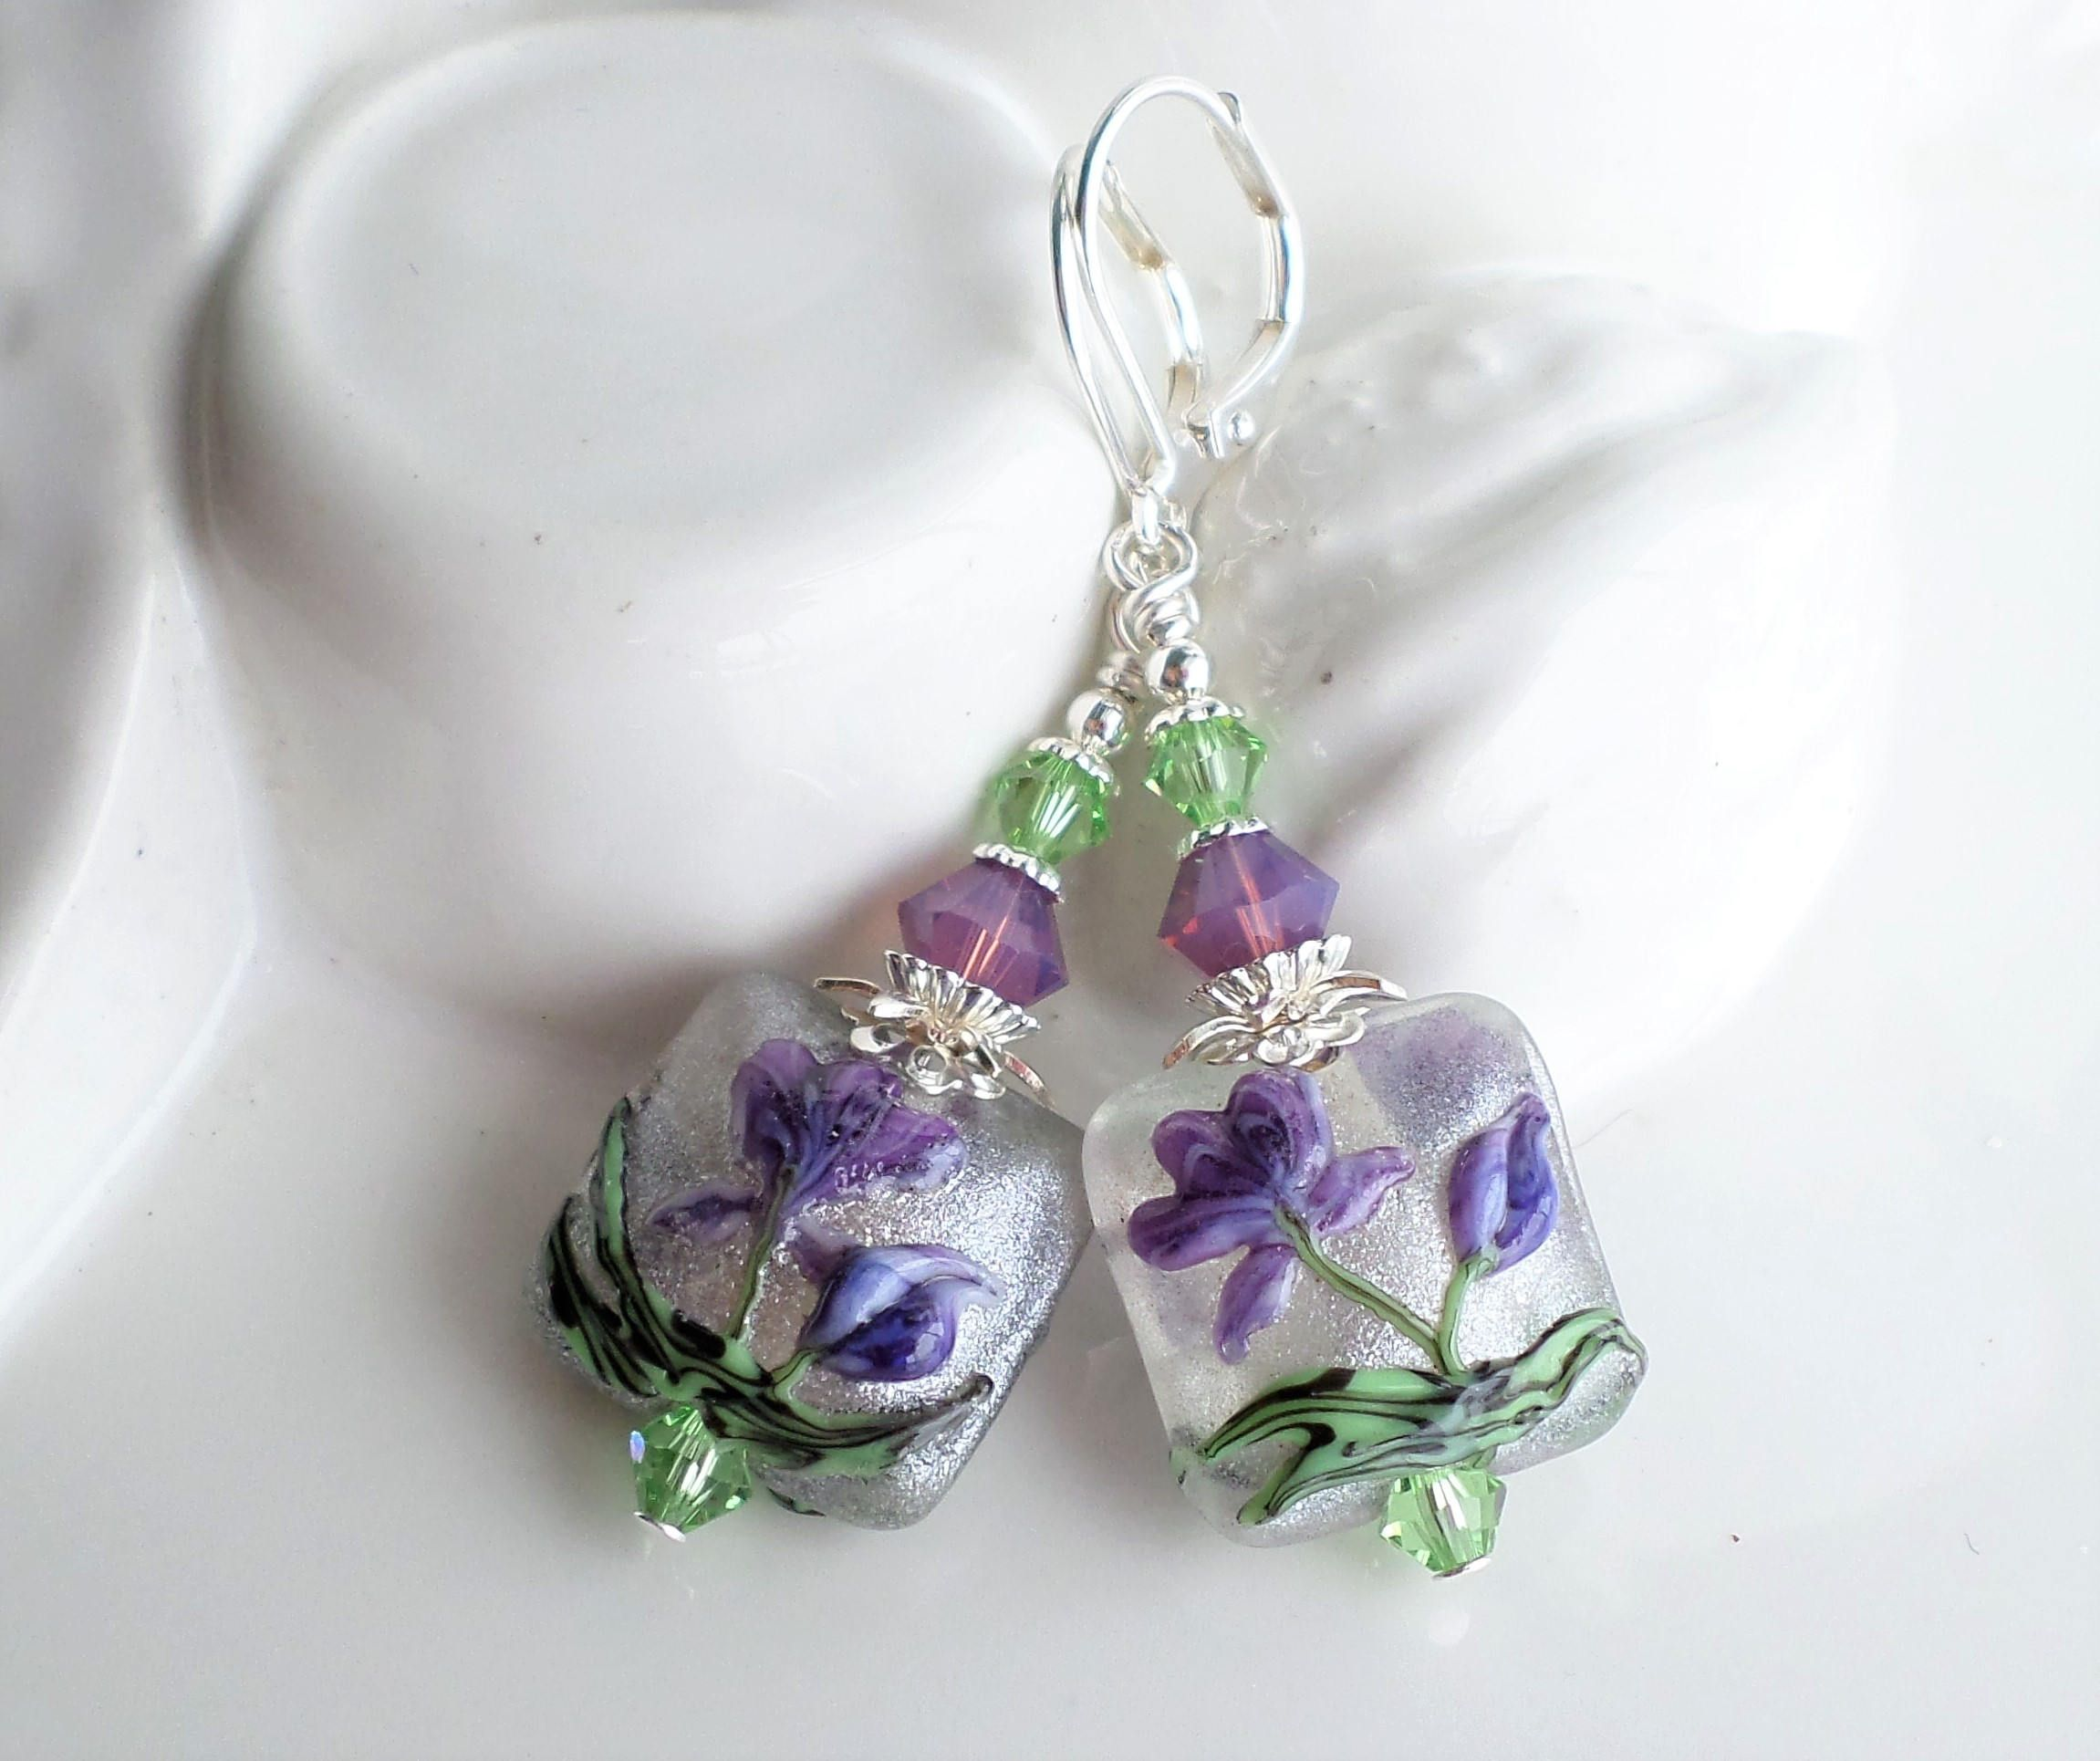 operandi pinterest sabbadini pin earrings moda flower purple amethyst